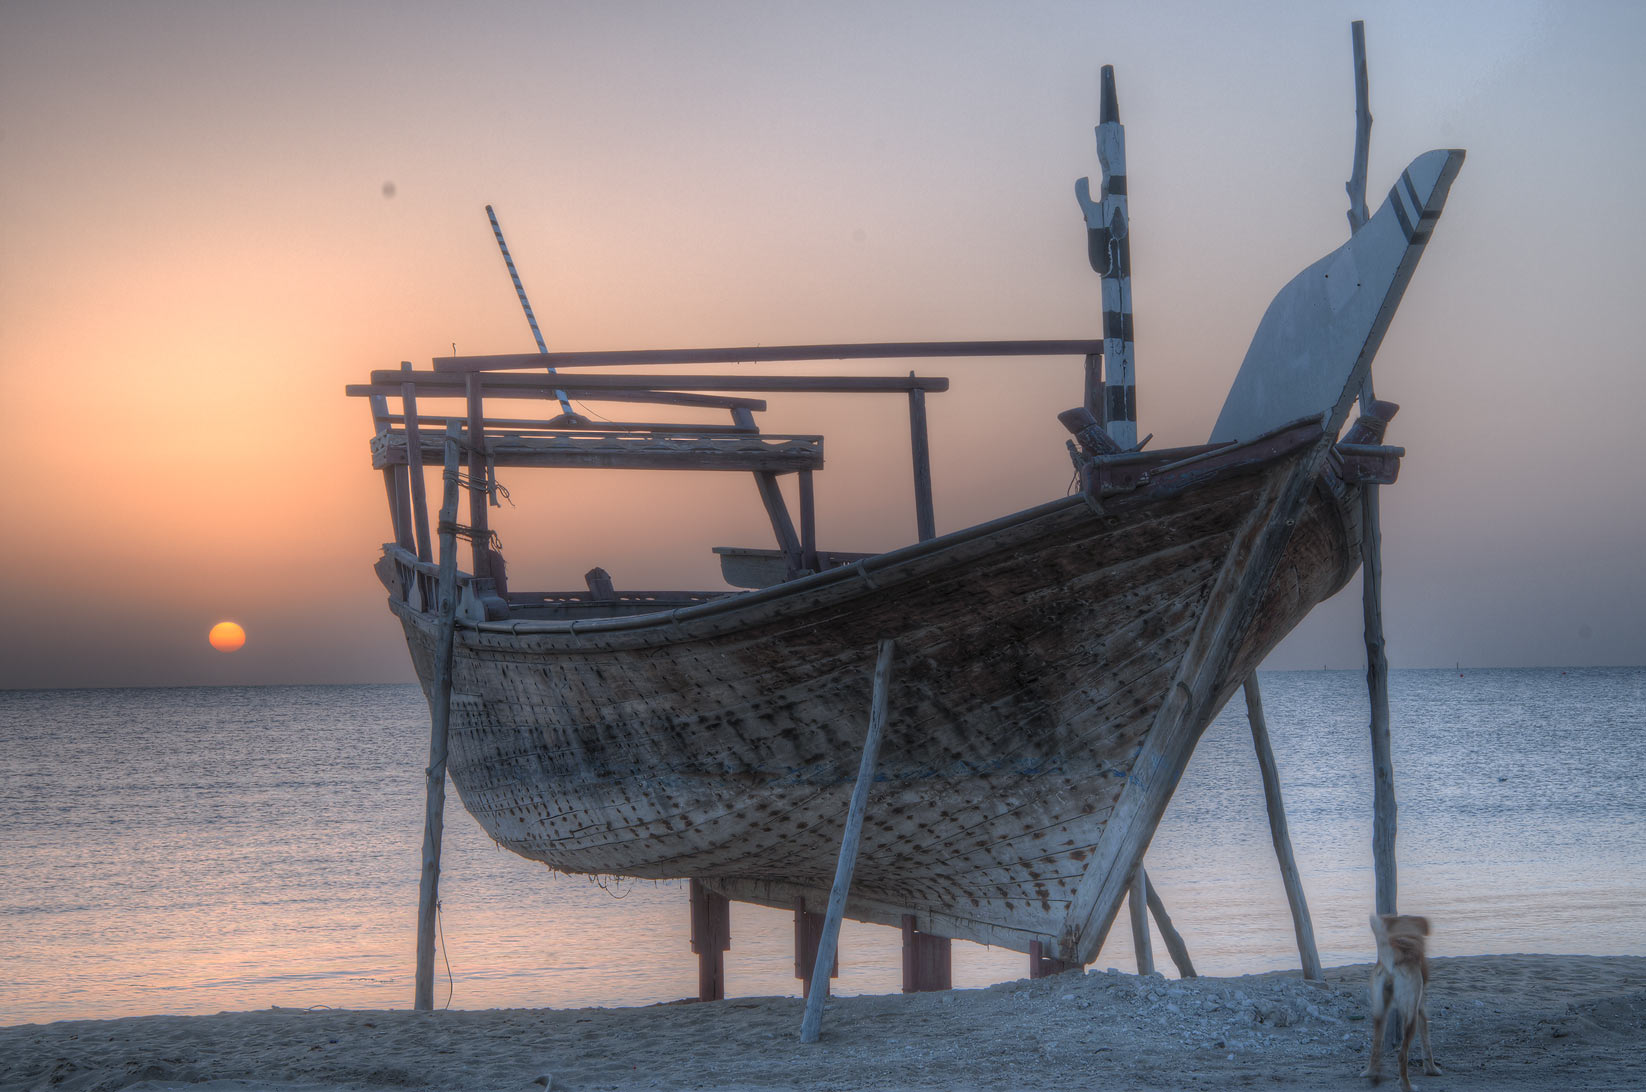 Silhouette of a fishing boat on a beach at sunrise. Al Wakrah, Qatar